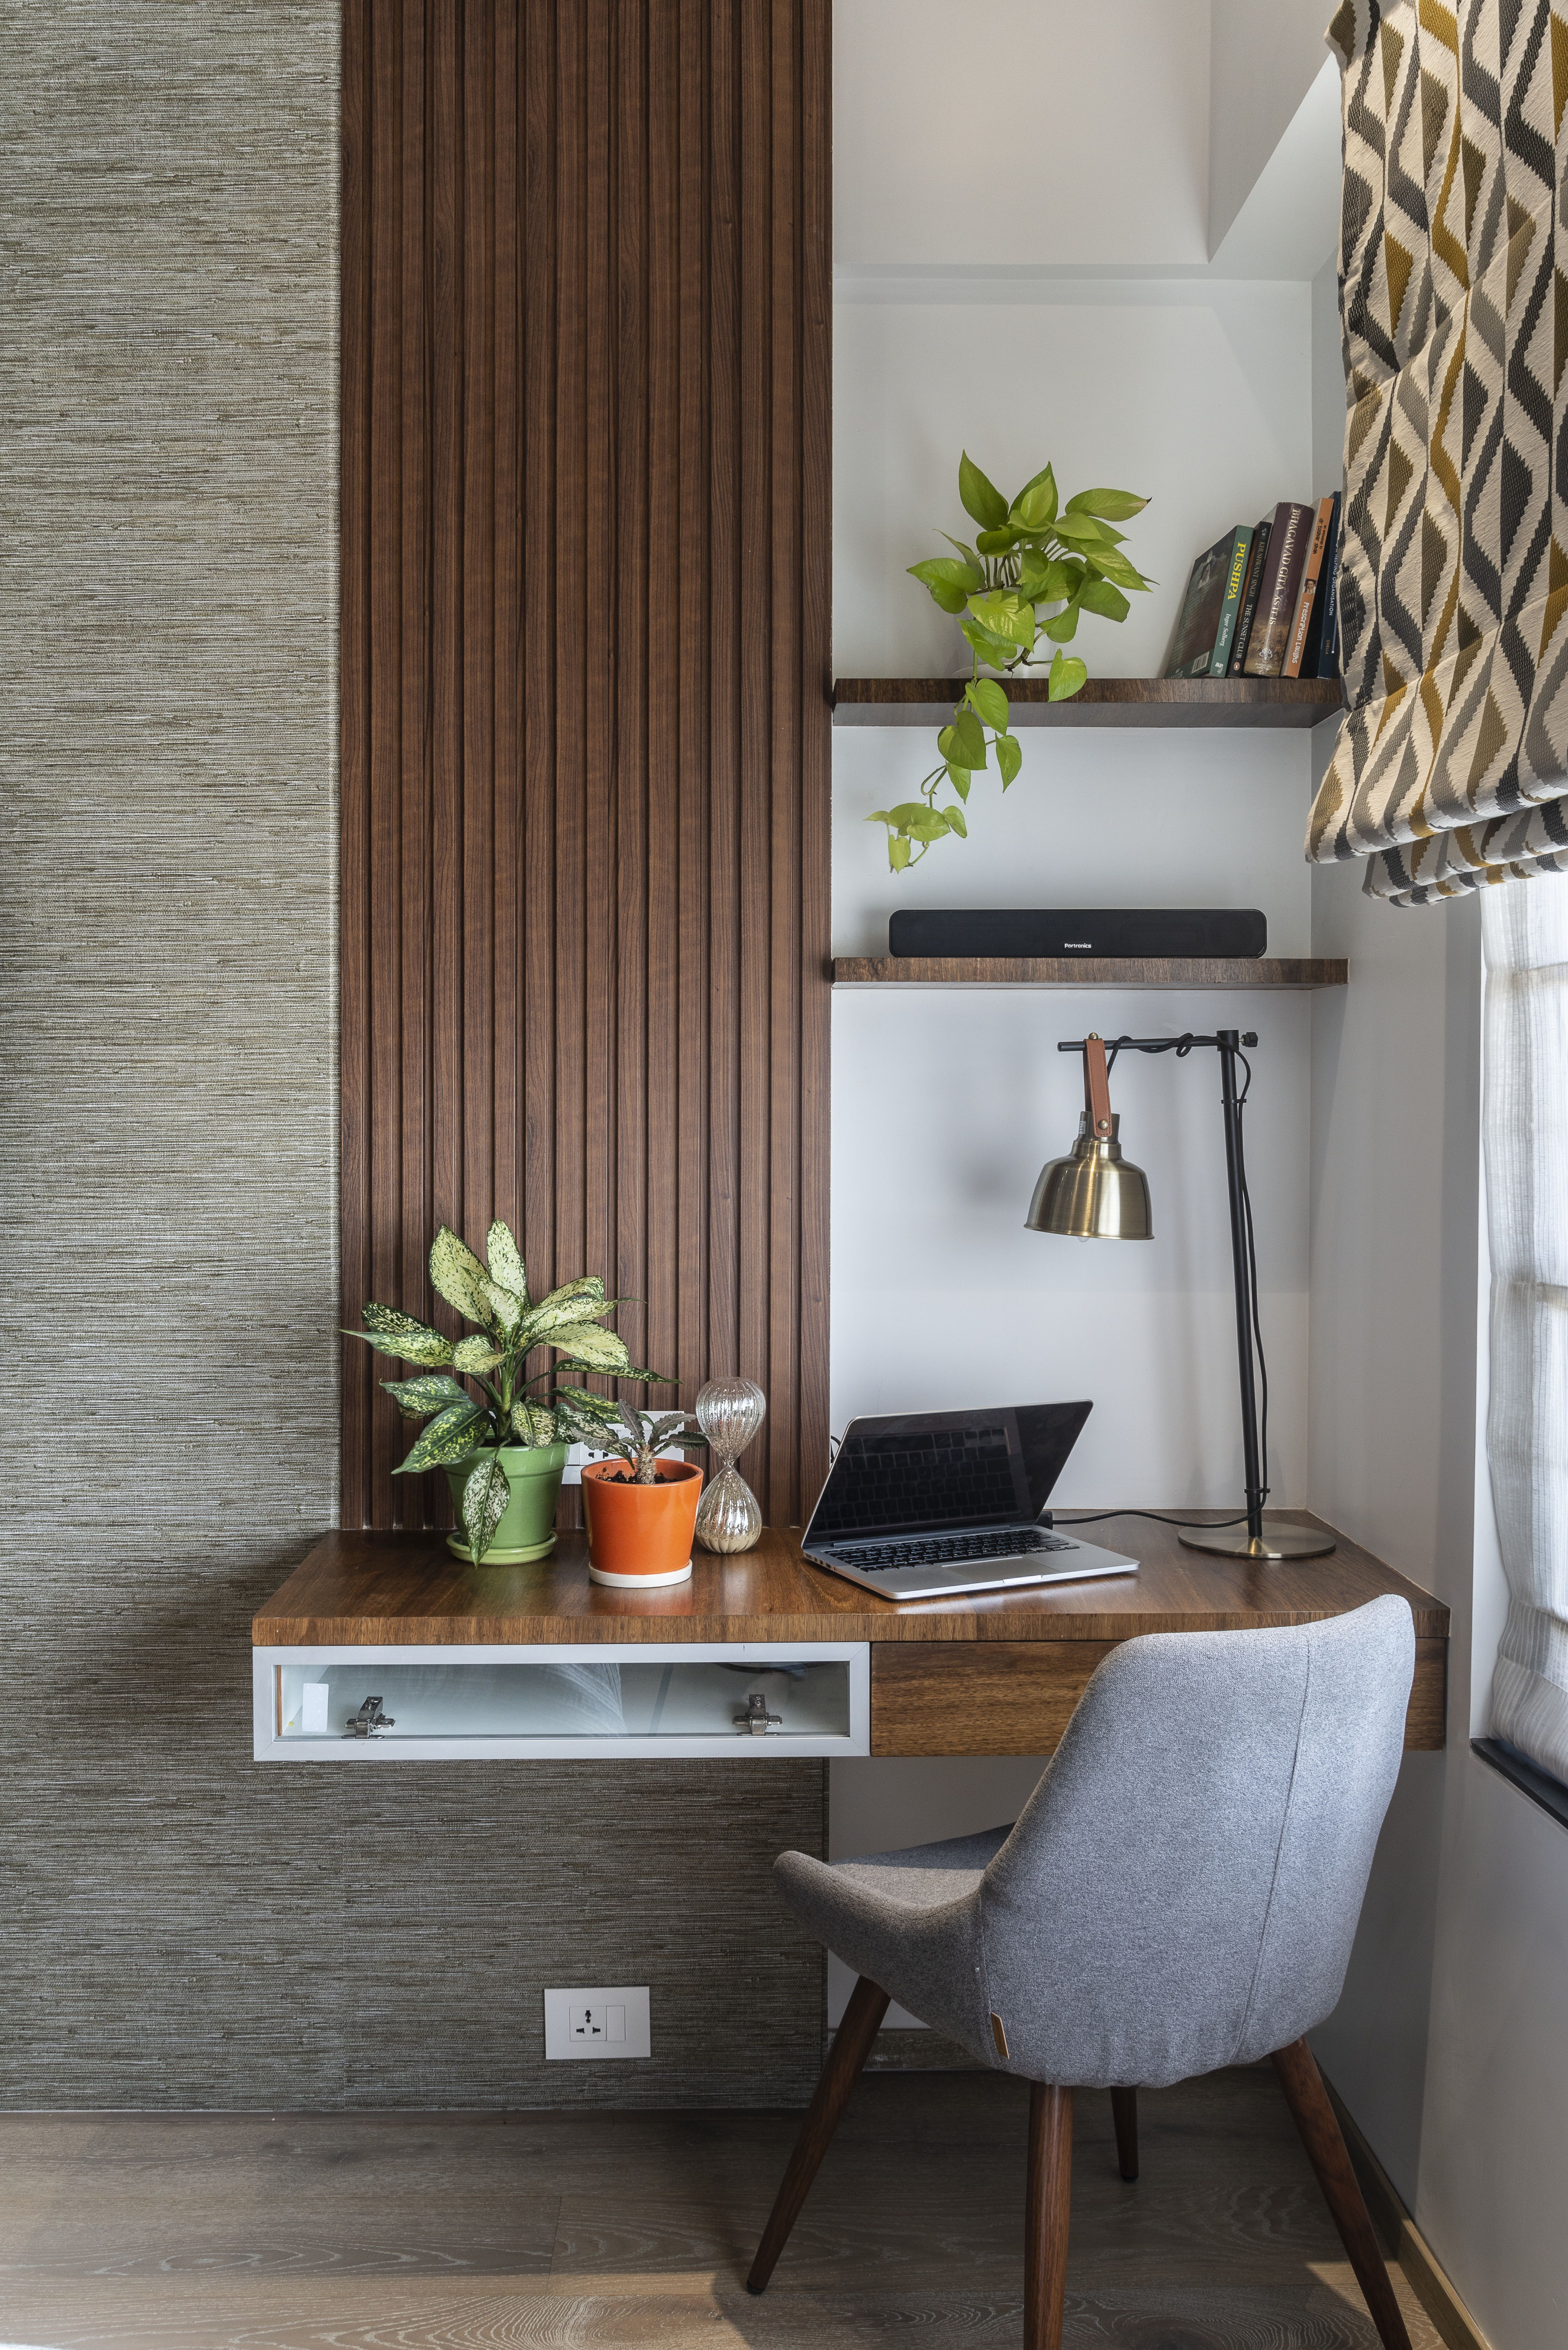 Ideas for home office in bedroom | Home room design, House interior decor,  Bedroom interior